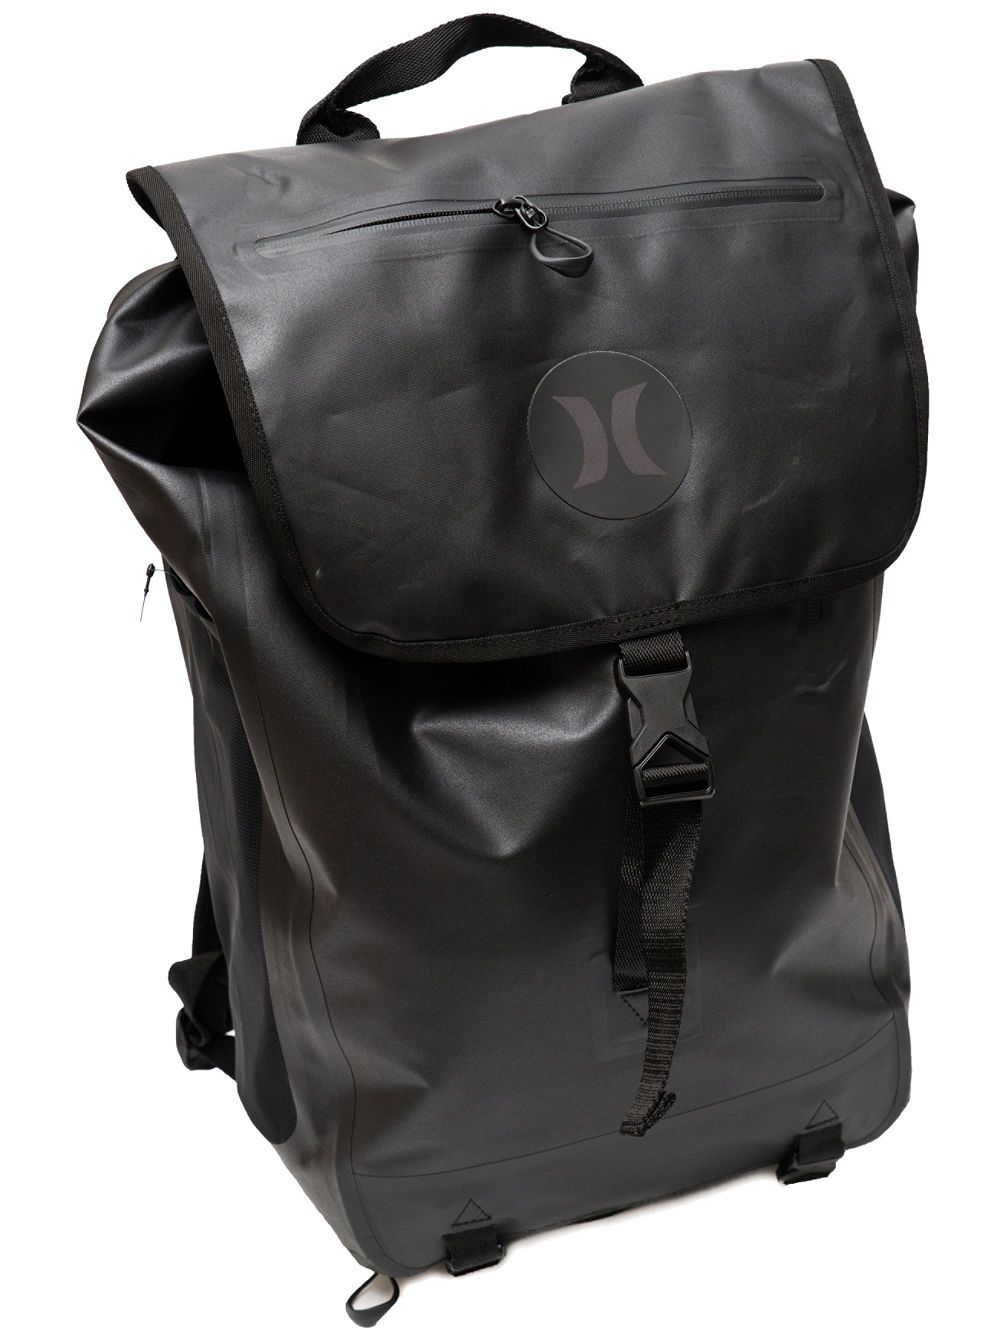 Wet Dry Elite Backpack